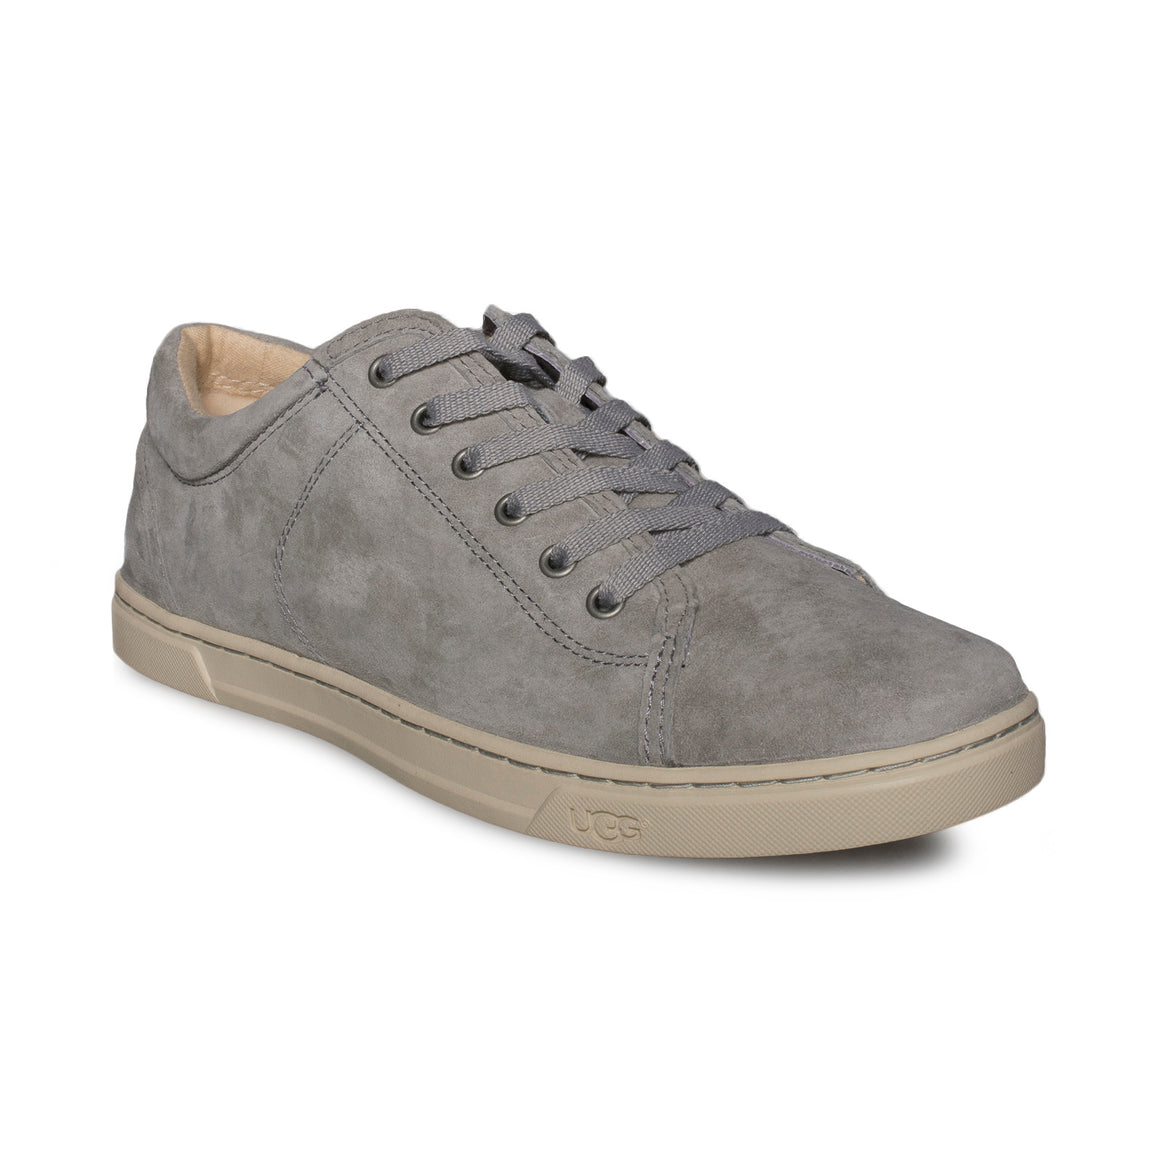 UGG Tomi Seal Sneakers - Women's